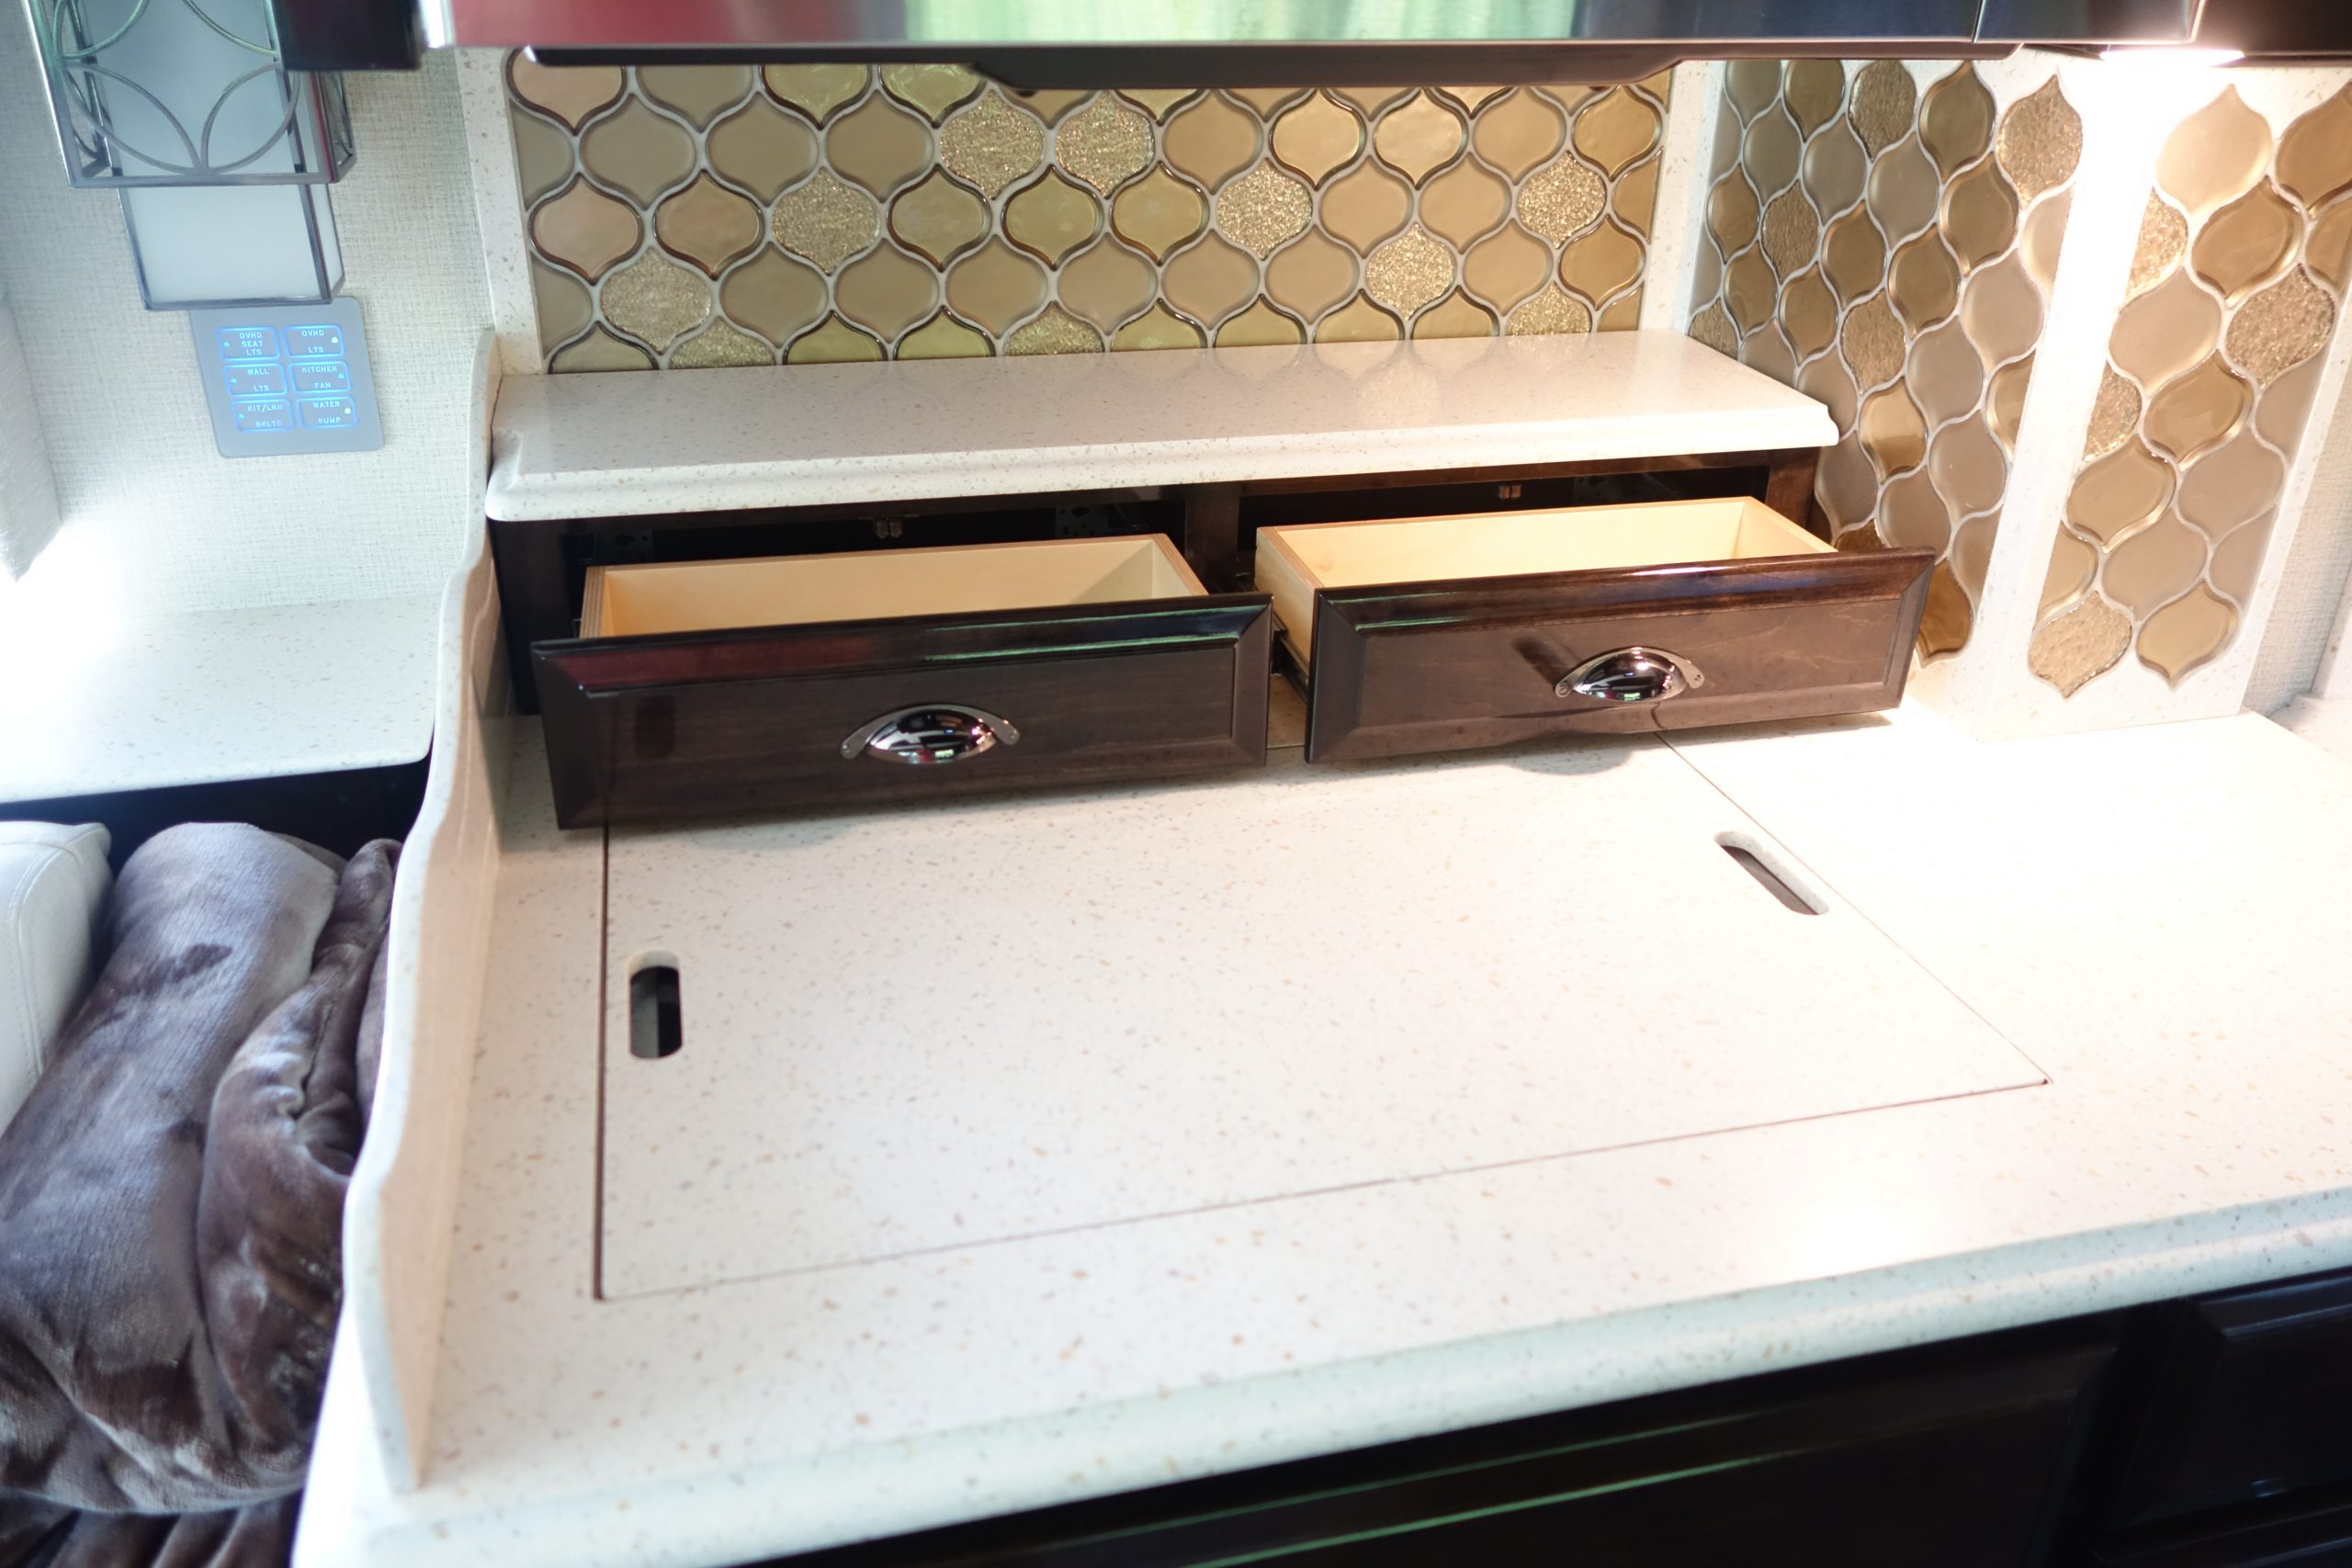 Countertop drawers opened